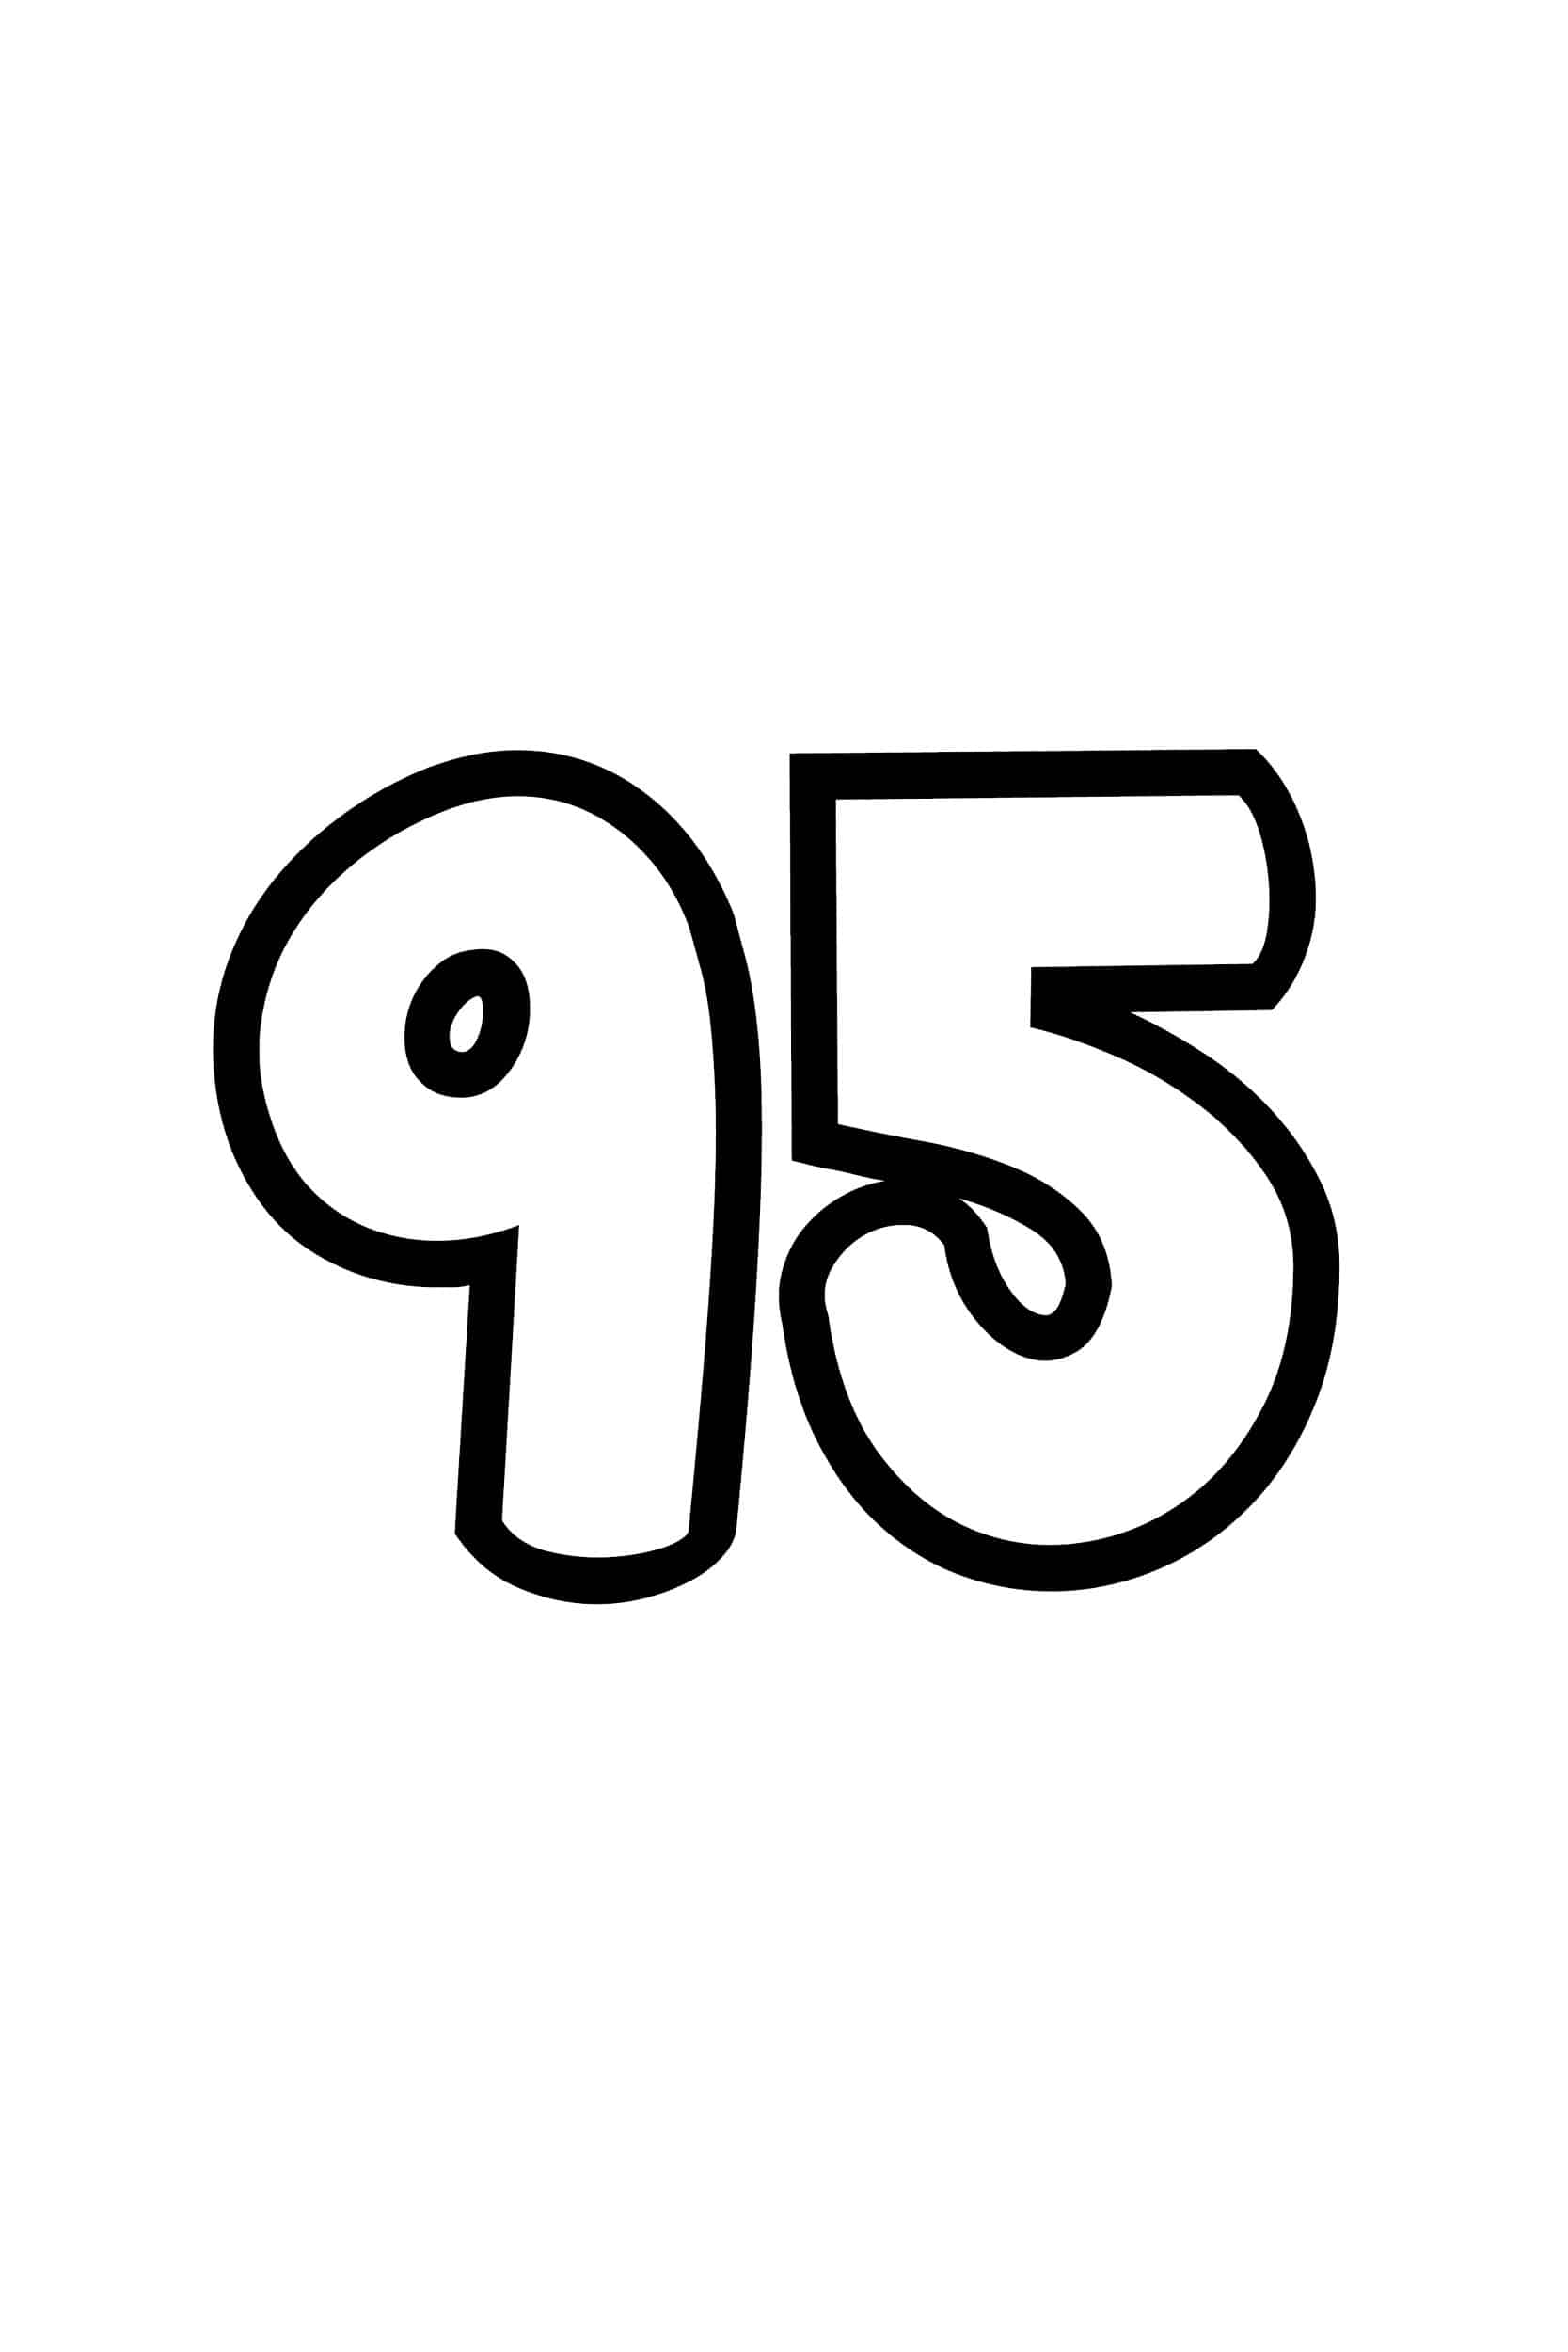 Free Printable Number Bubble Letters Bubble Number 95